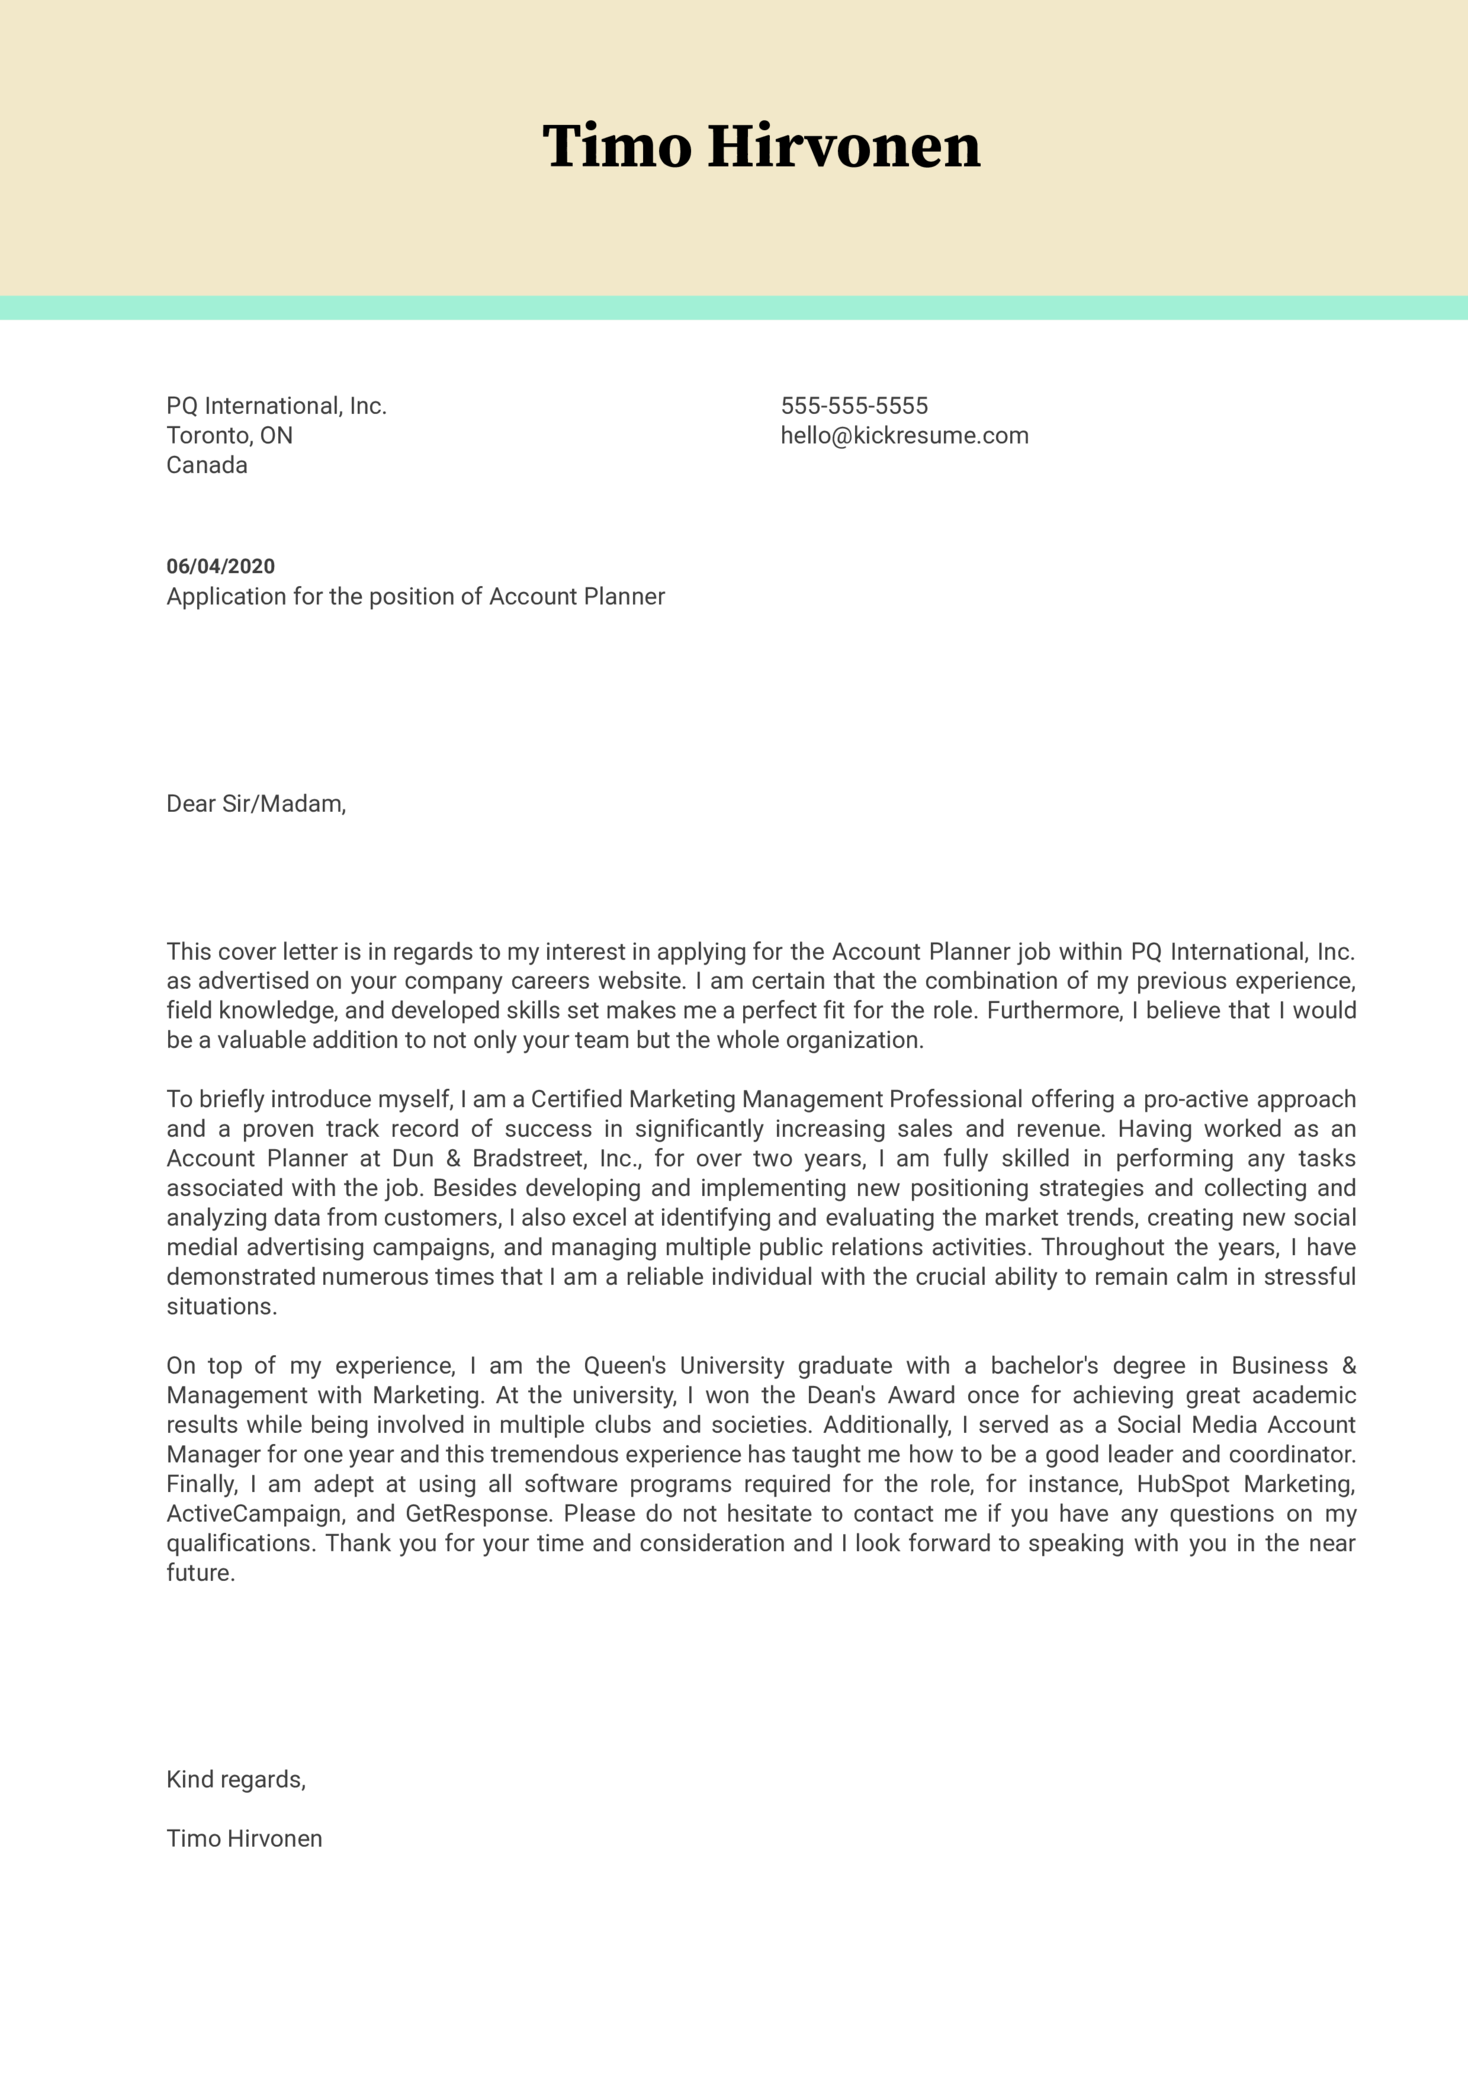 Account Planner Cover Letter Example